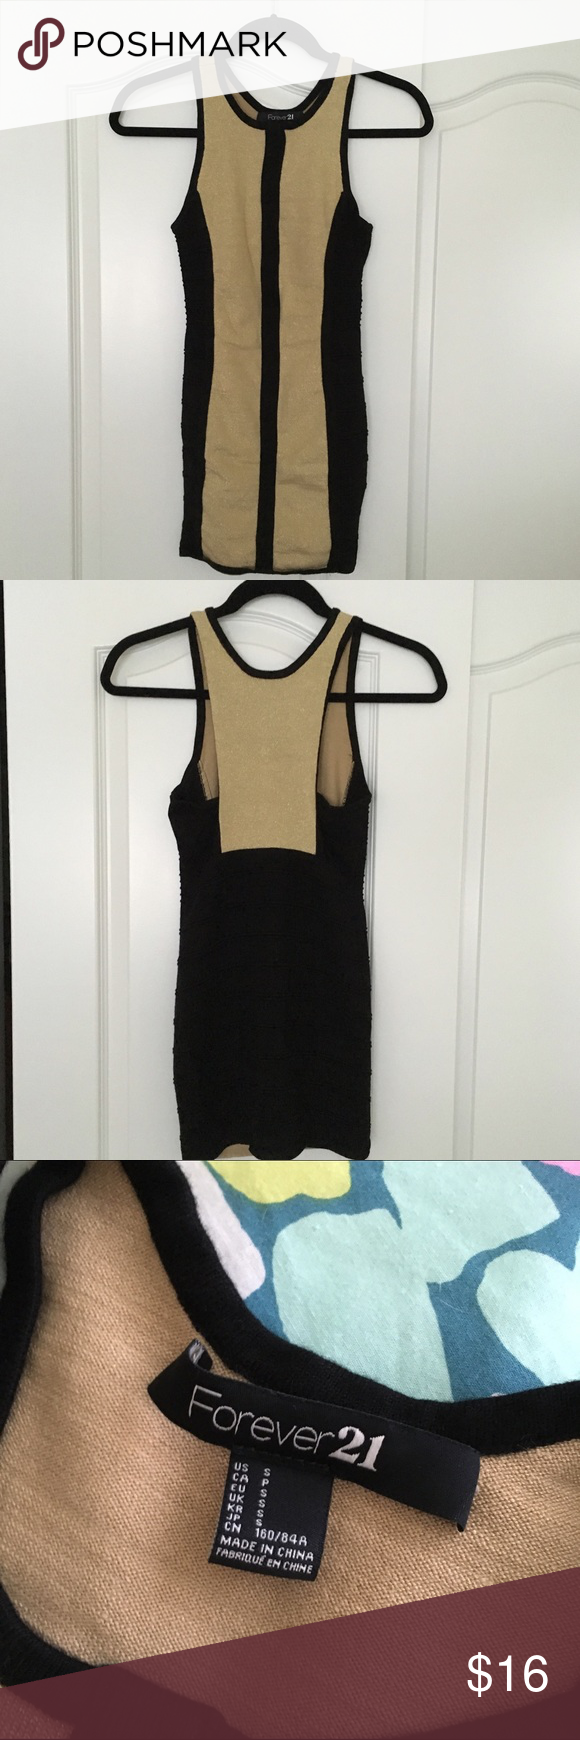 Forever 21 Black and Gold Bandage Dress Black and gold bandage mini dress. Fits like an XS but has some stretch to it. Runs short. Only worn once. Forever 21 Dresses Mini